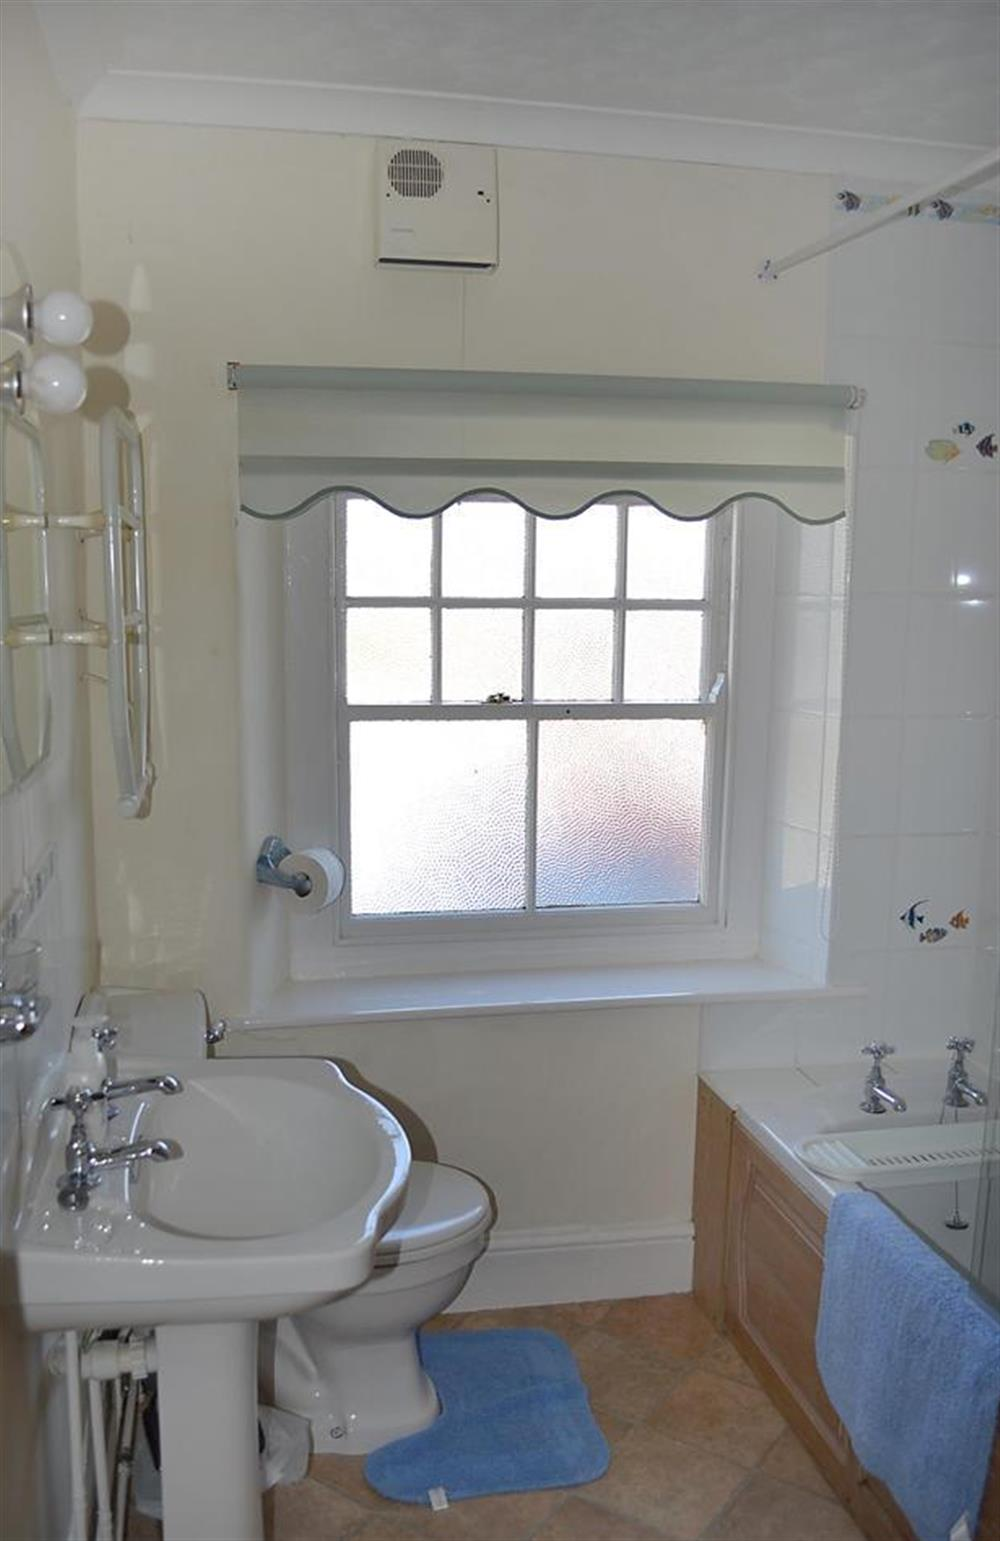 The first floor bathroom at Homelands, Dittisham